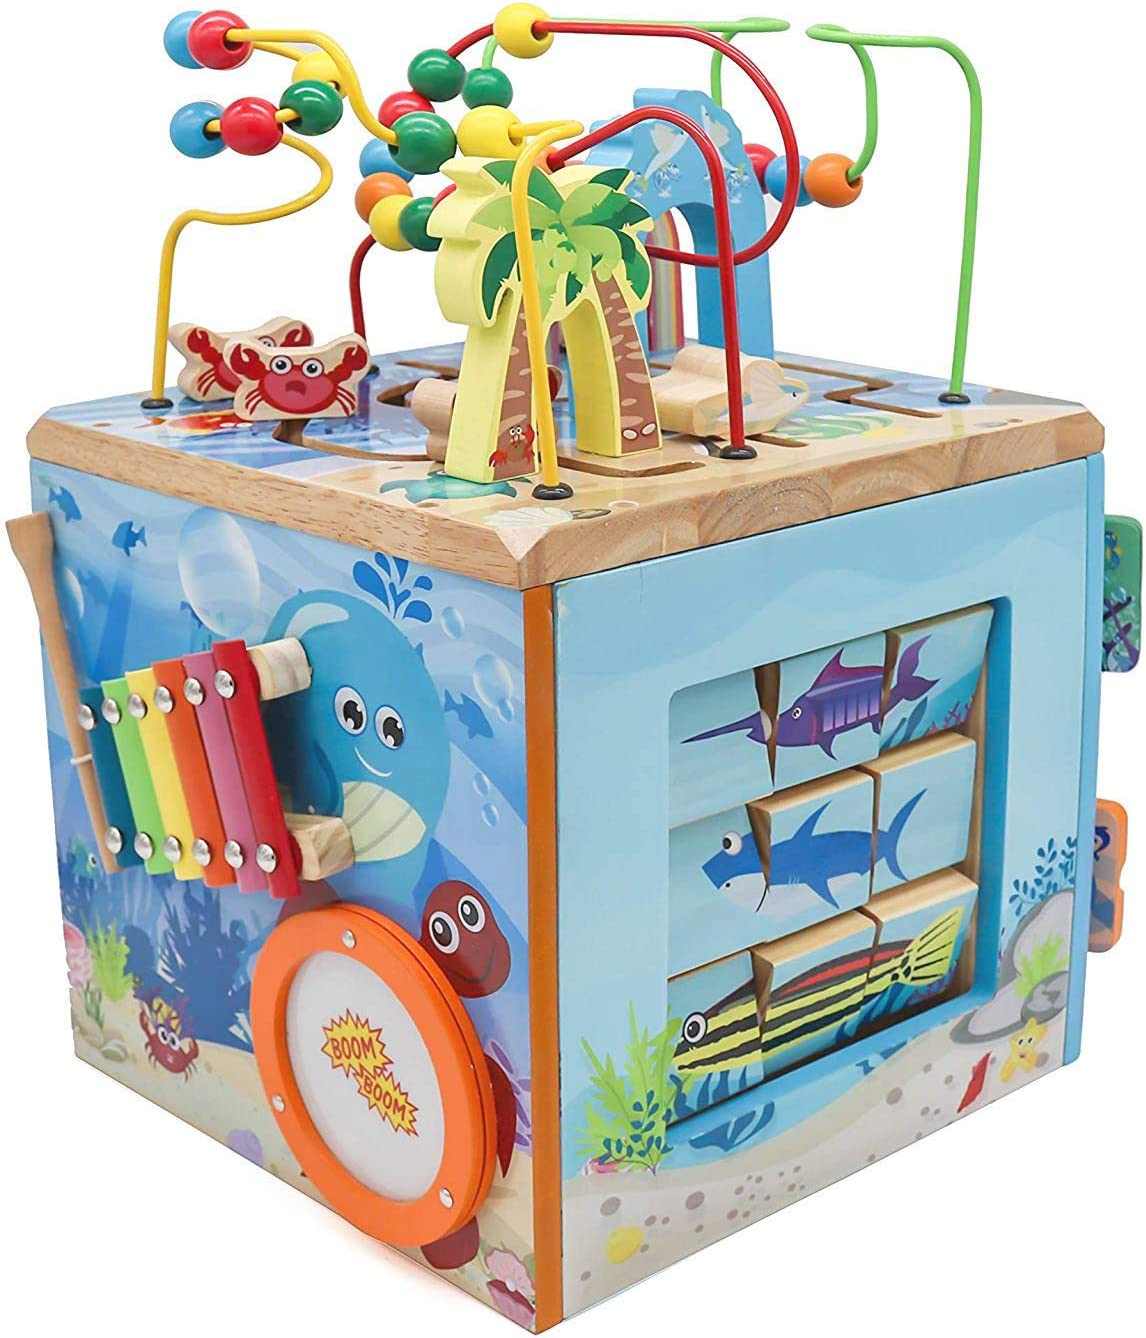 Under The Sea Adventures Perfect For Kids Deluxe Activity Wooden Maze Cube